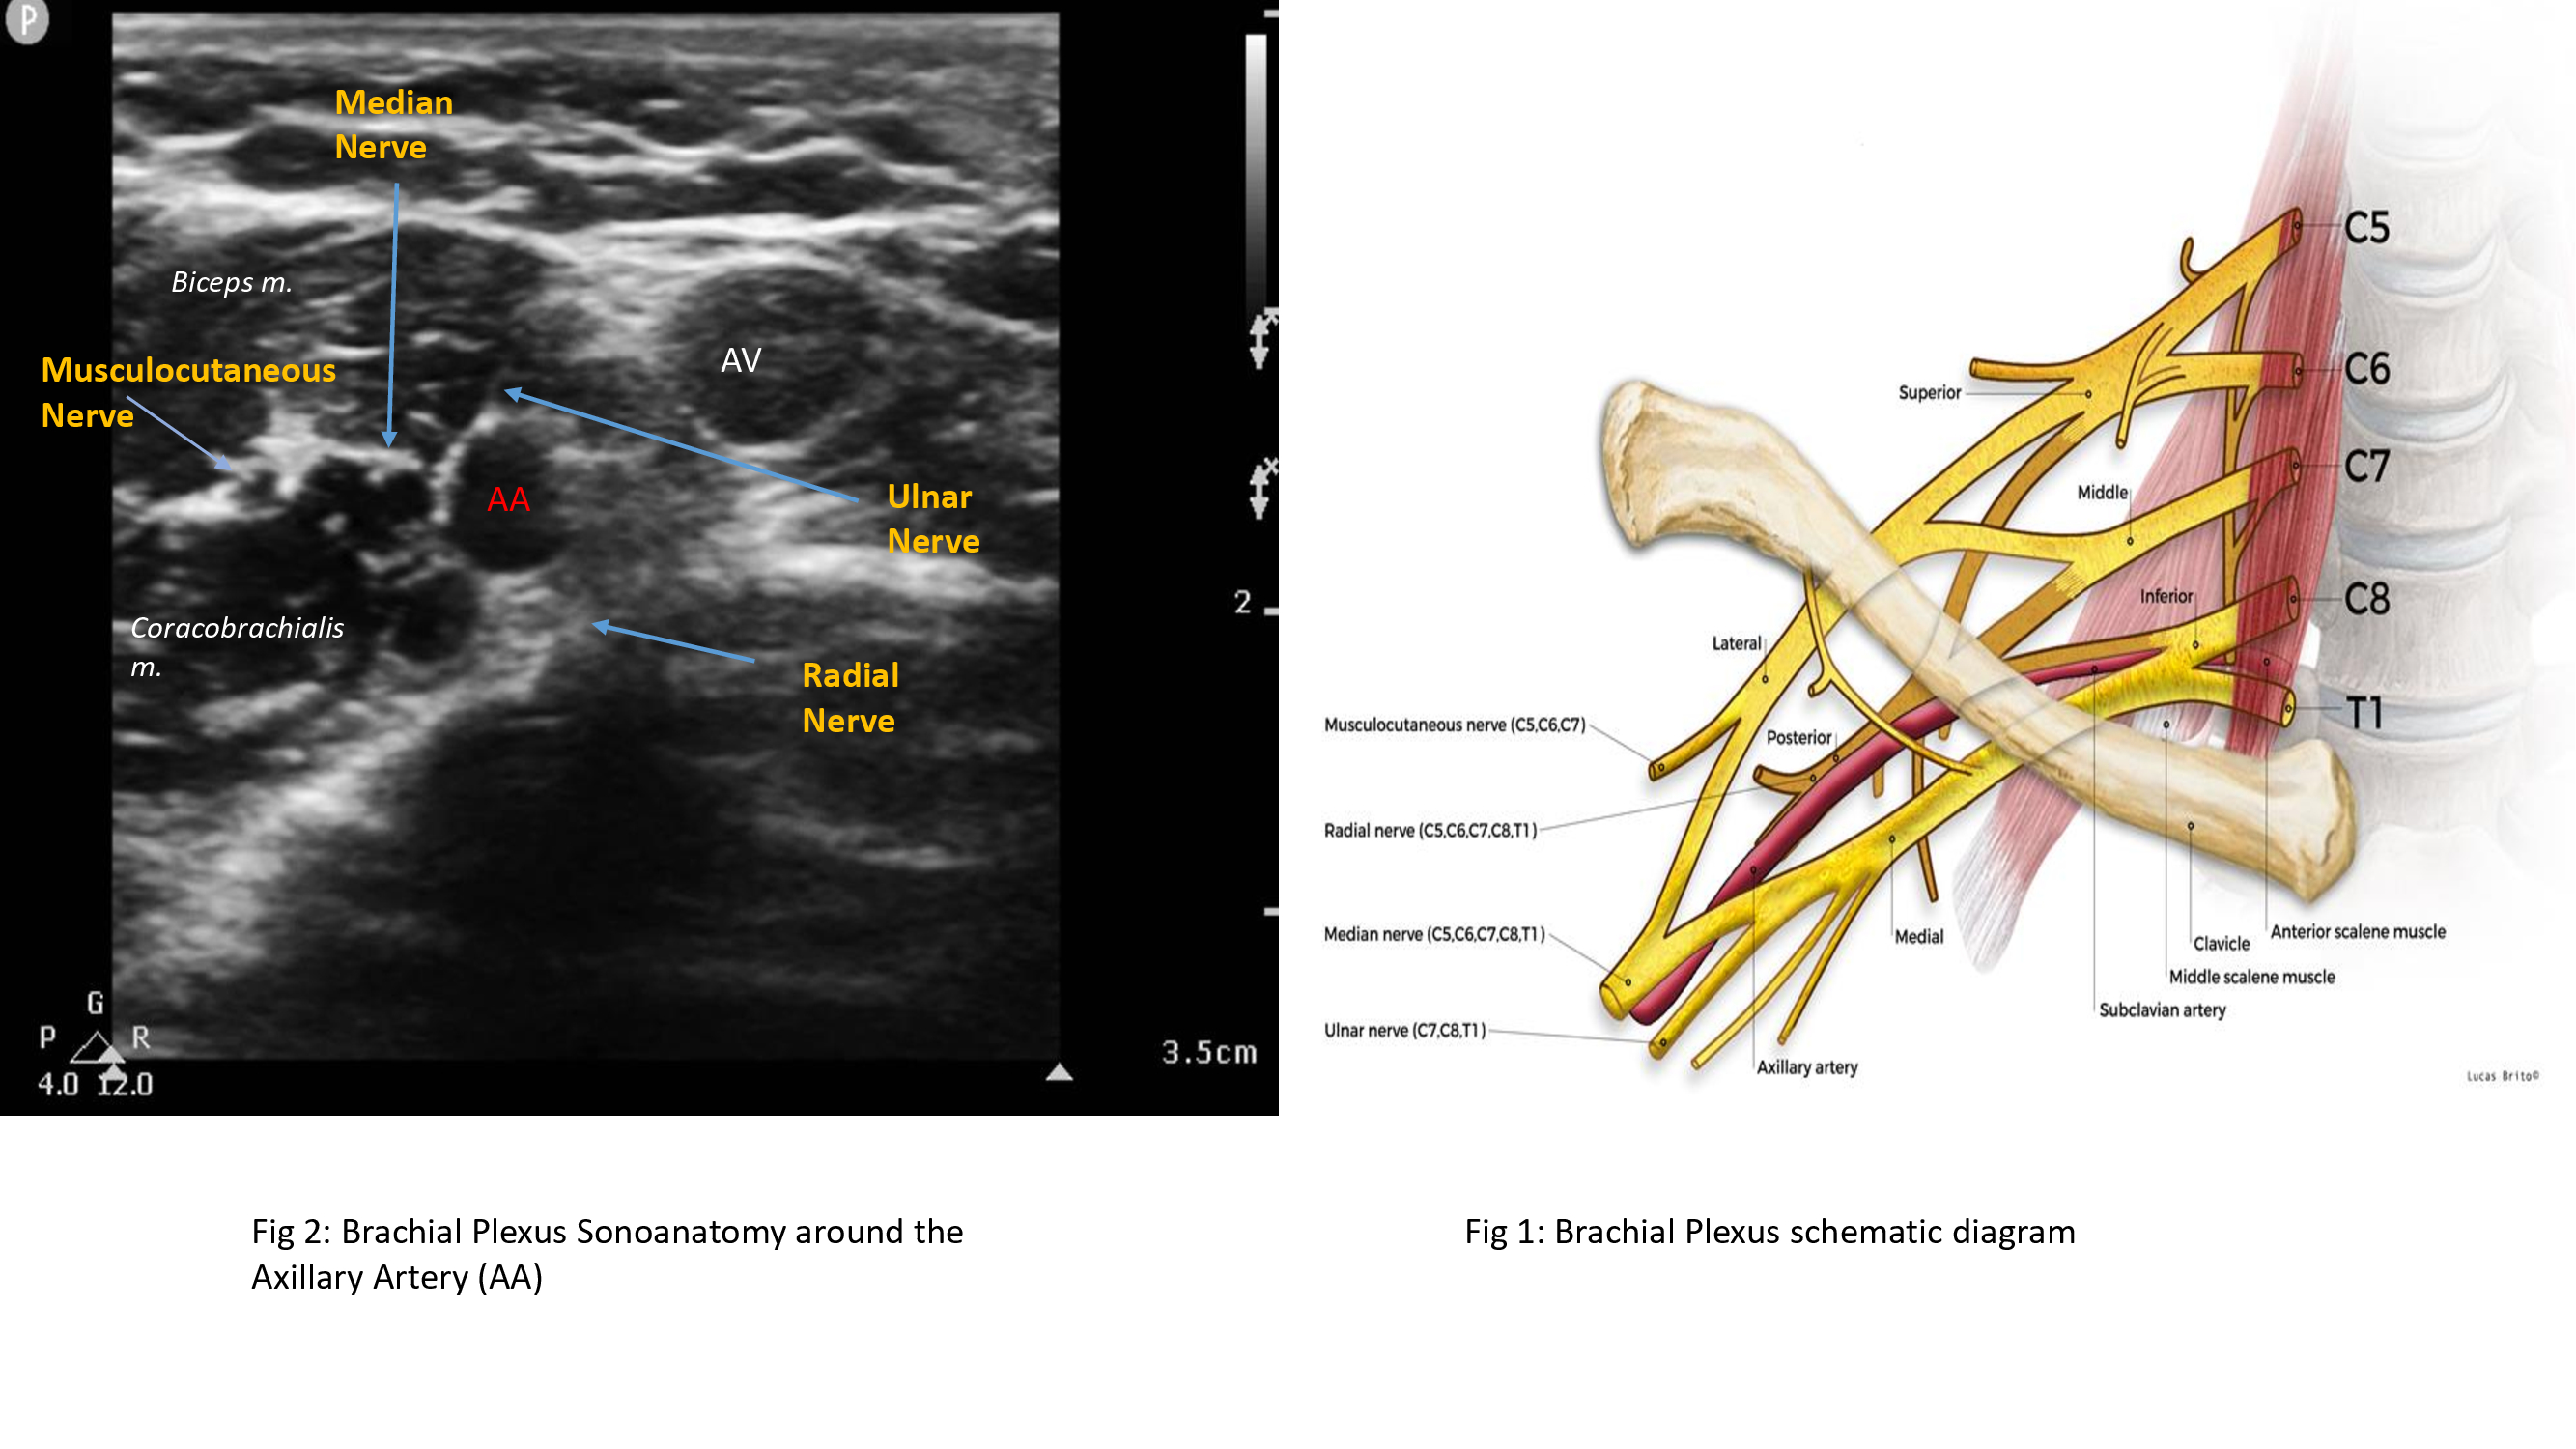 Fig 1: Schematic diagram of brachial plexus